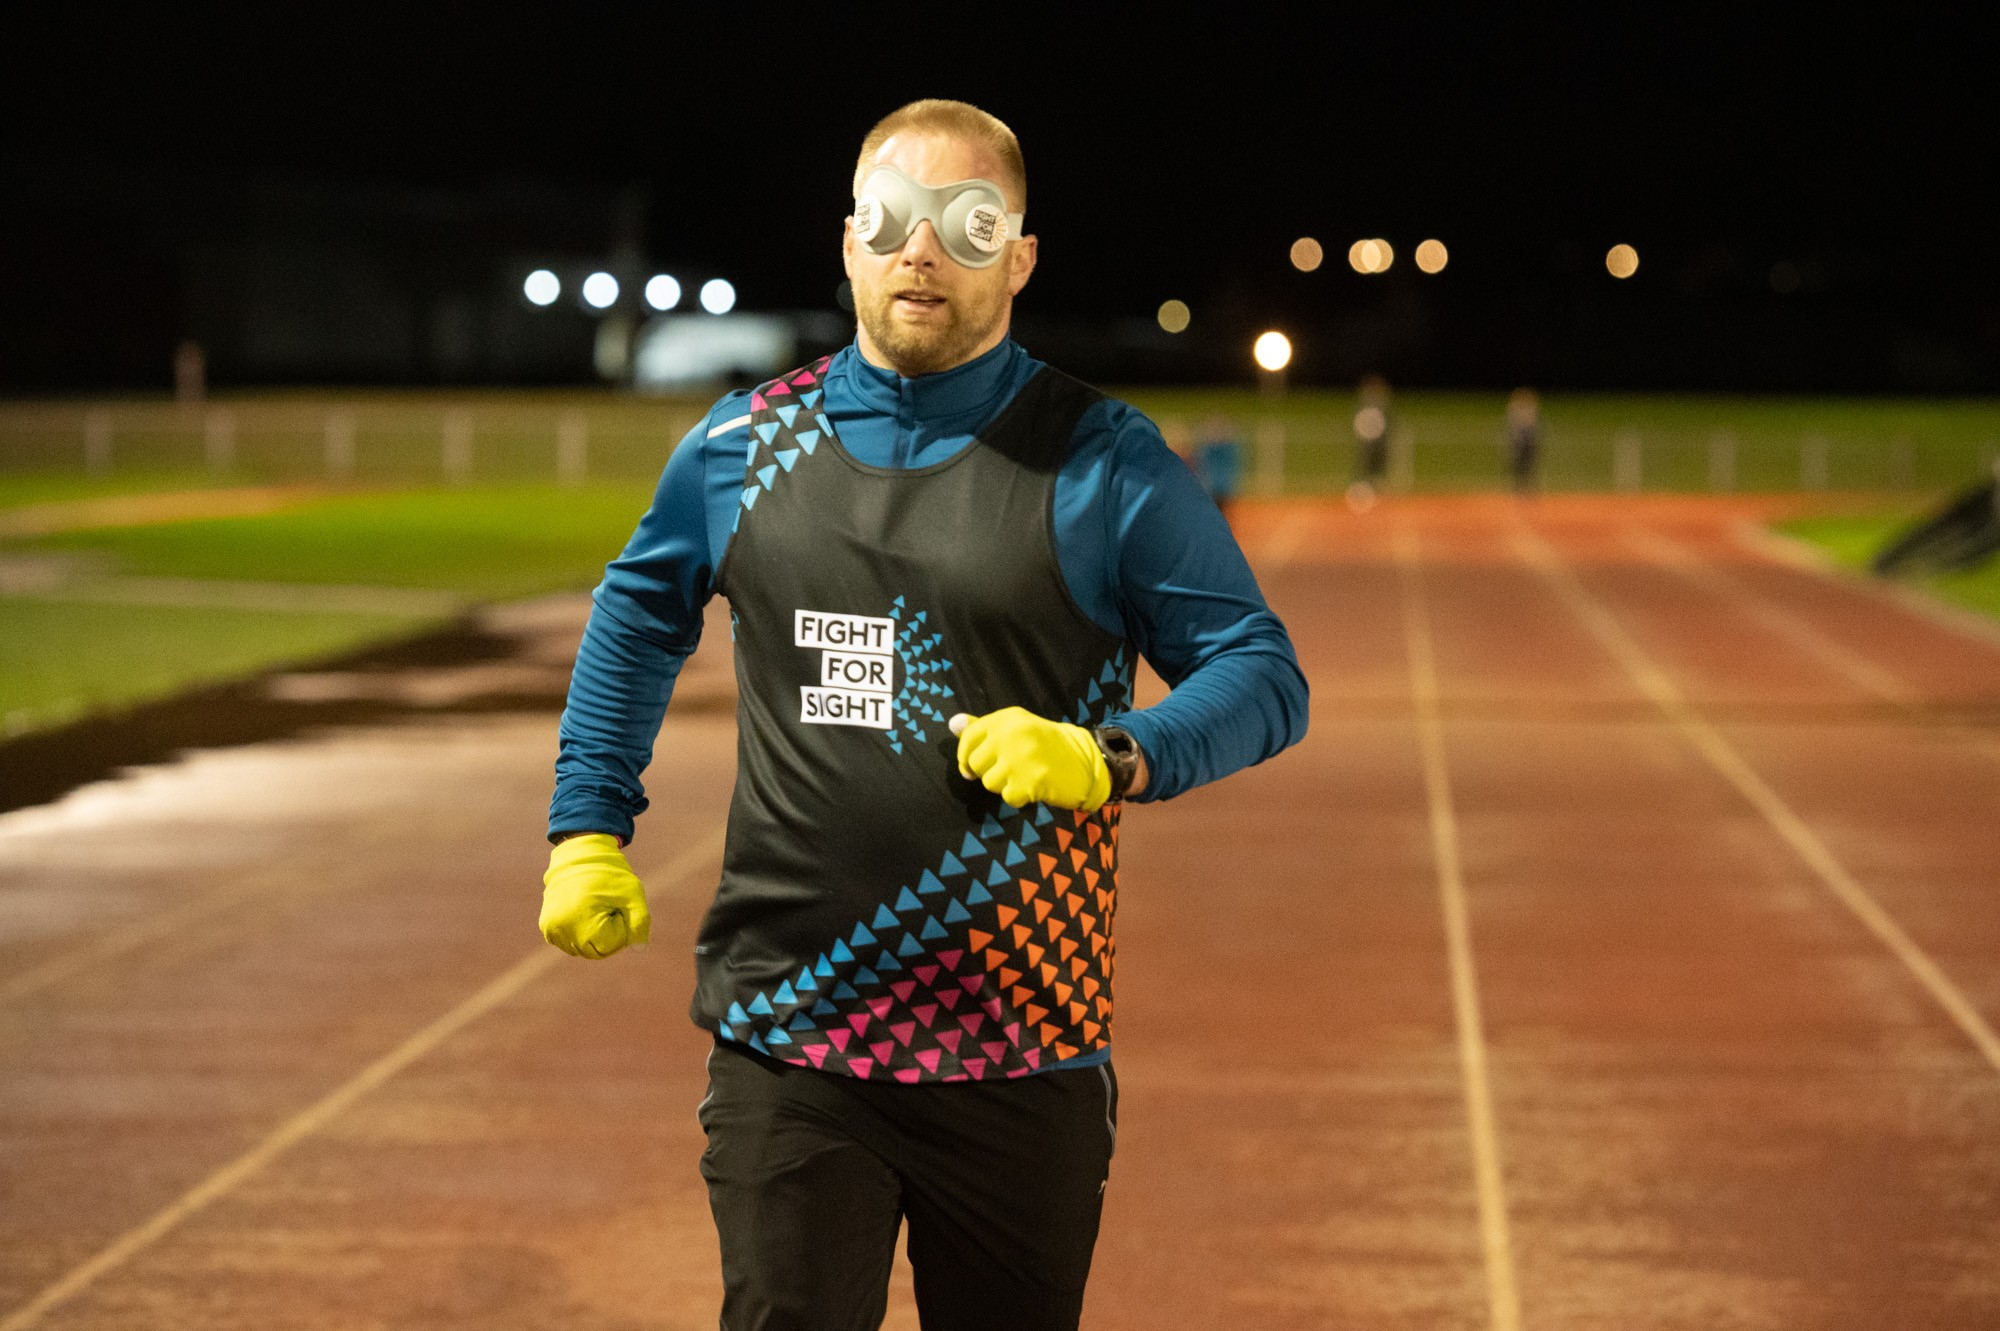 A man running on a track while blindfolded.